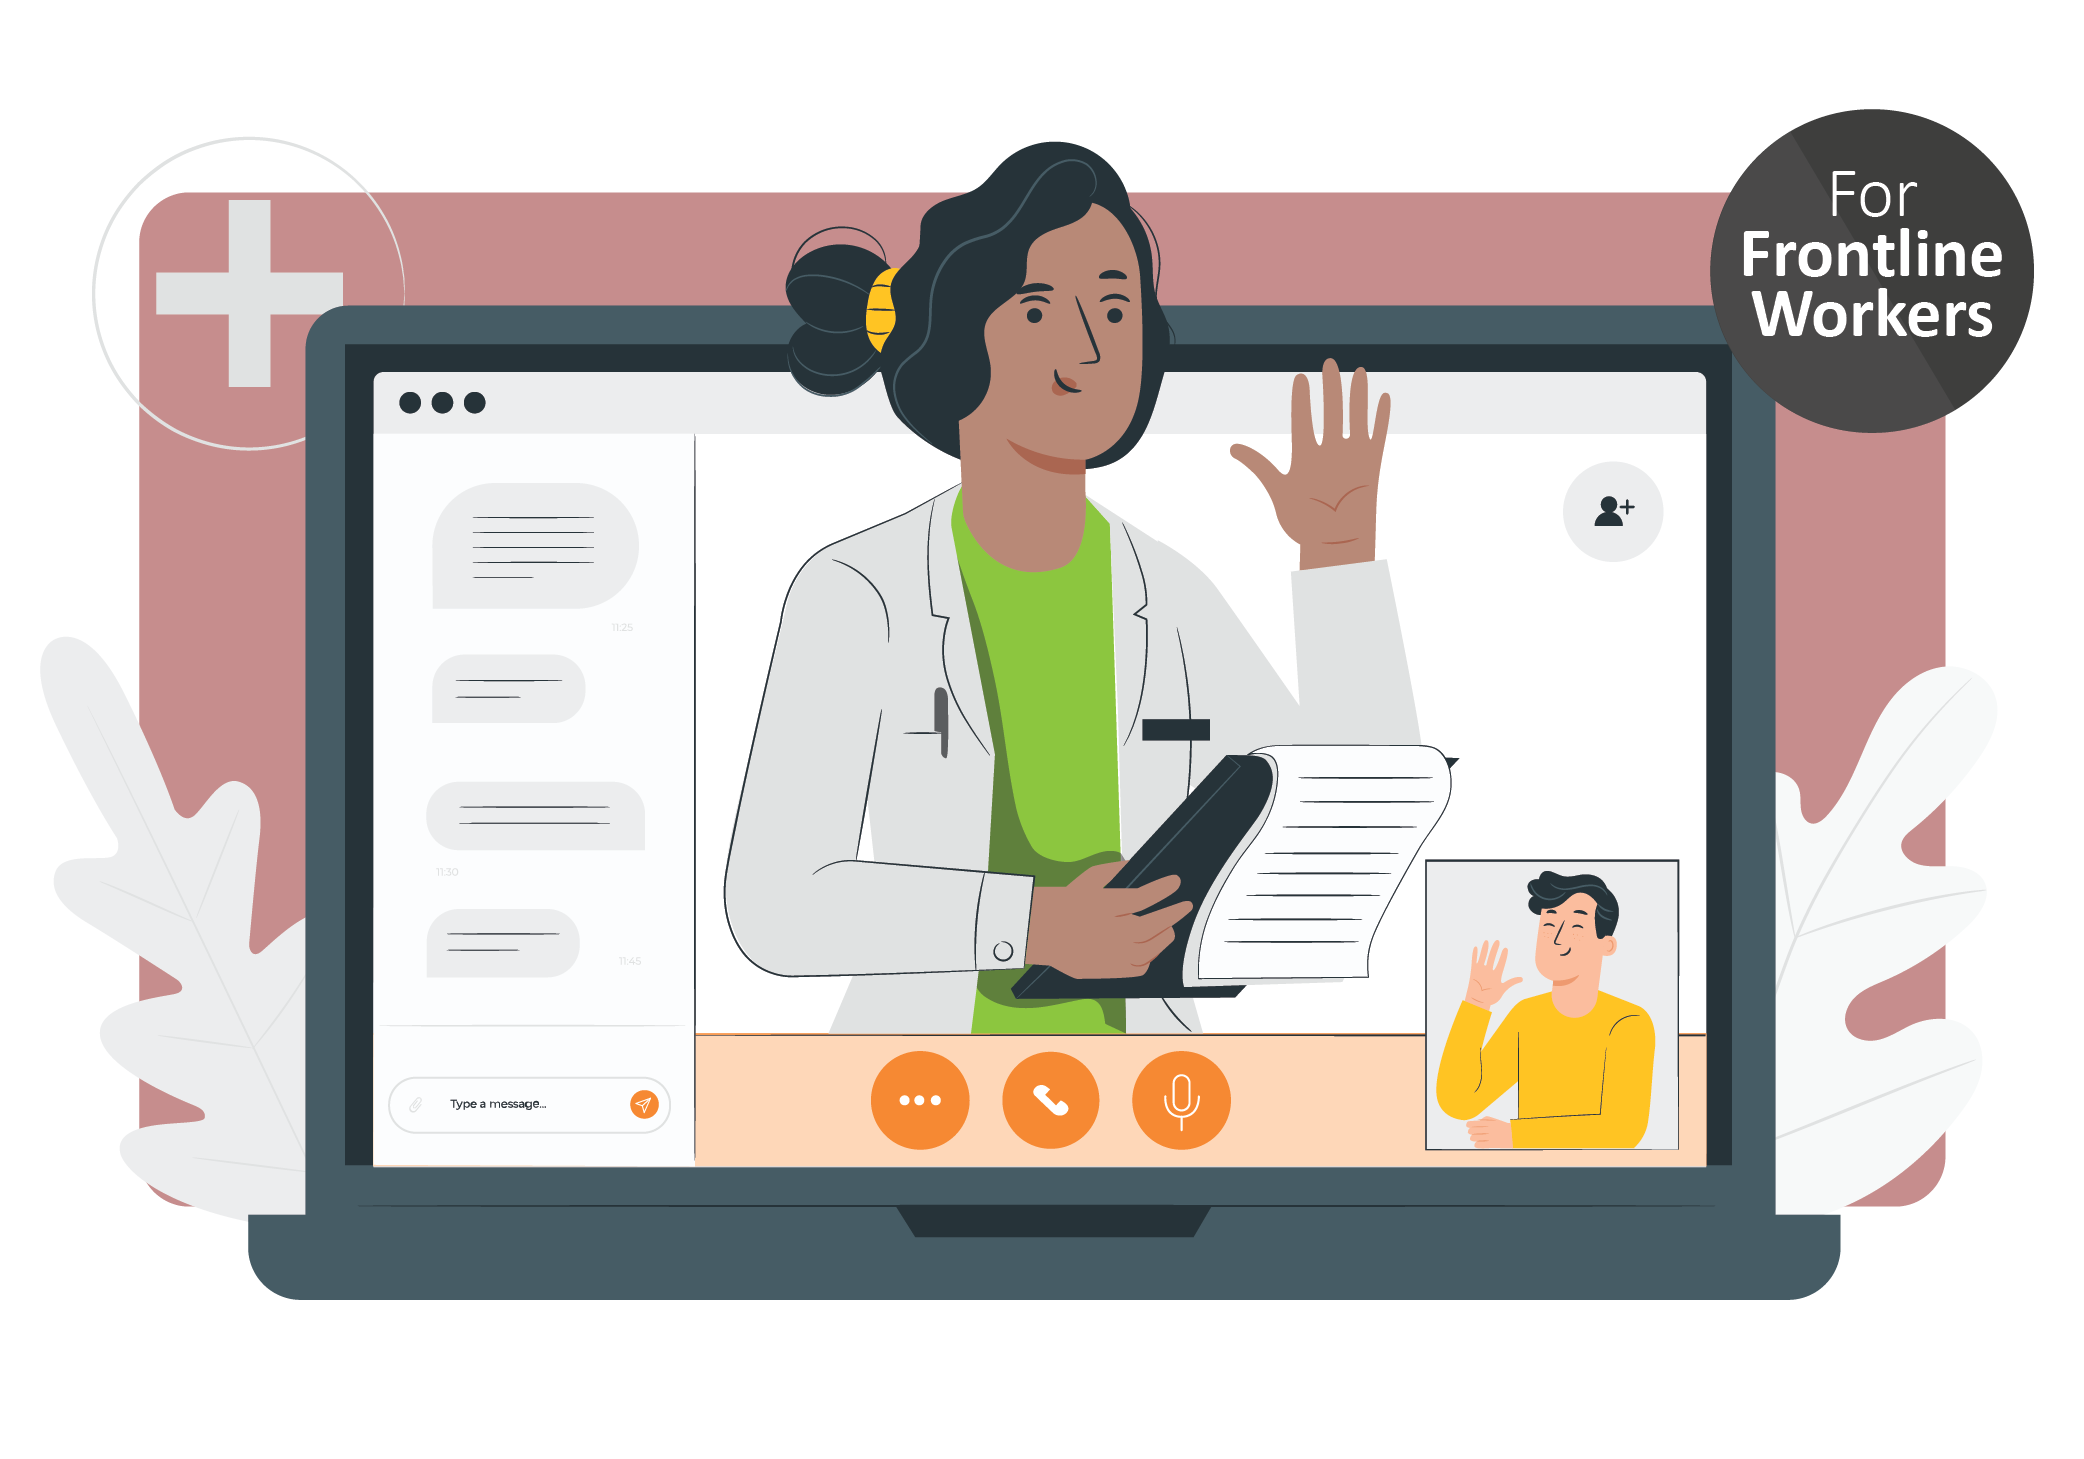 A doctor video chatting with a man on a computer. Icon in upper right corner indicating that this resource is created for front line workers in long term care homes.